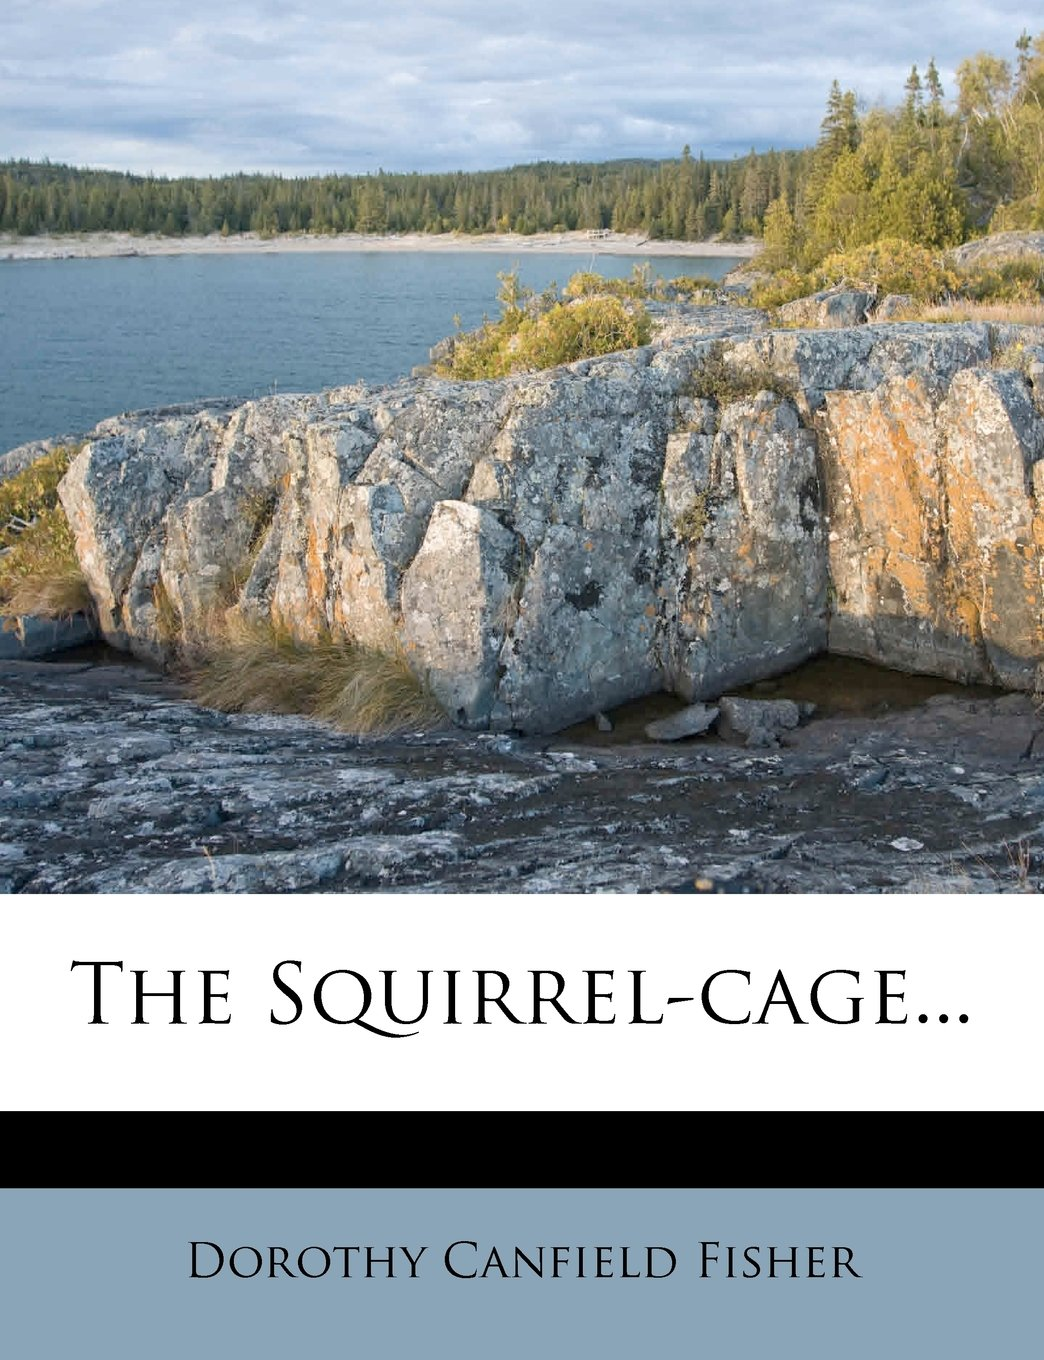 The Squirrel-cage... ebook